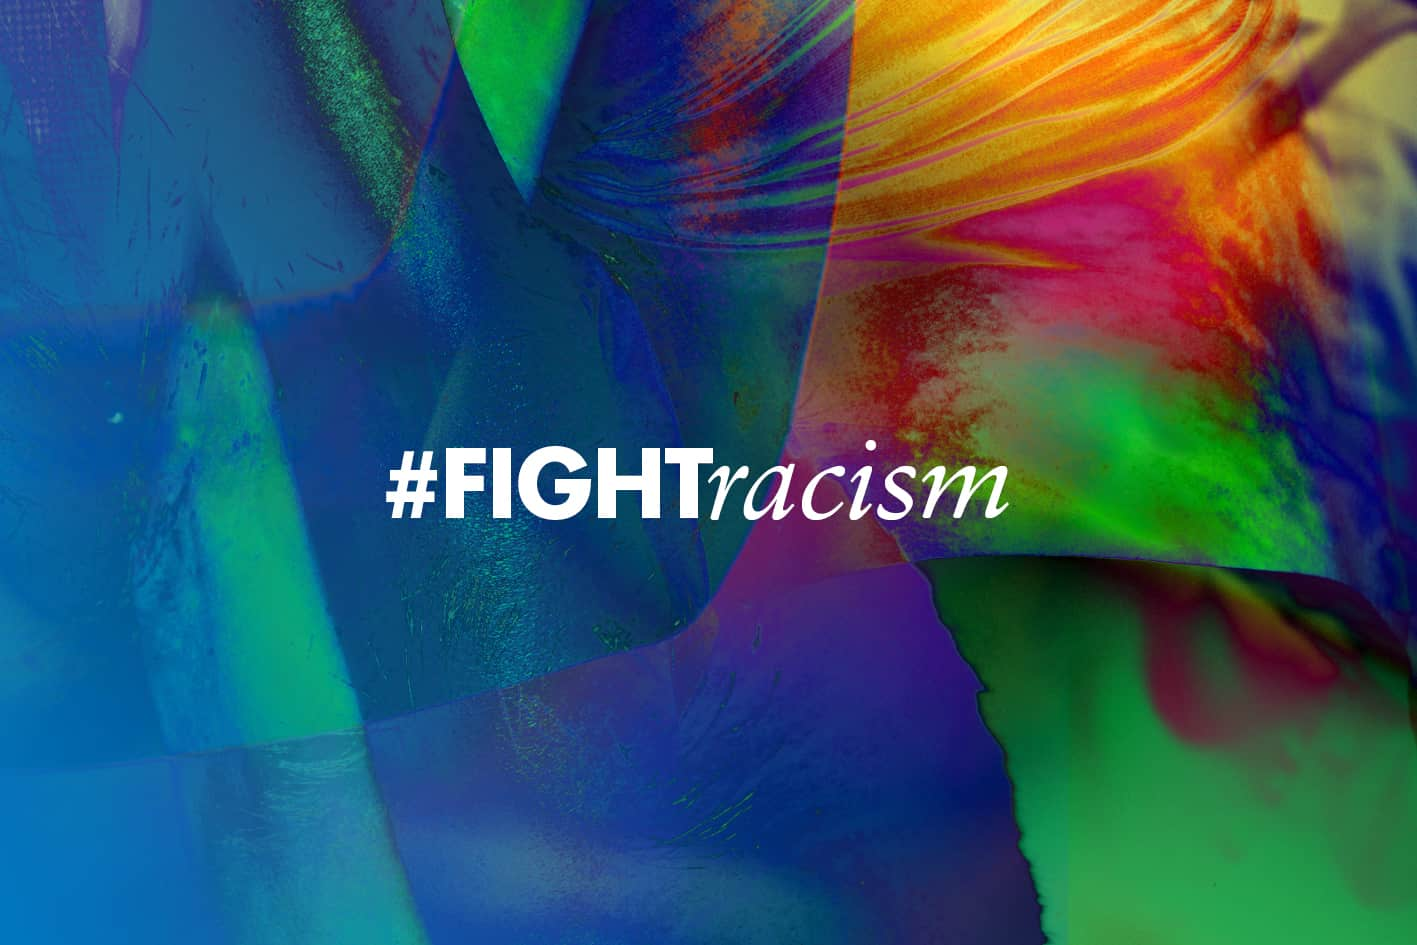 21 - International-Day-for-the-Elimination-of-Racial-Discrimination-2019